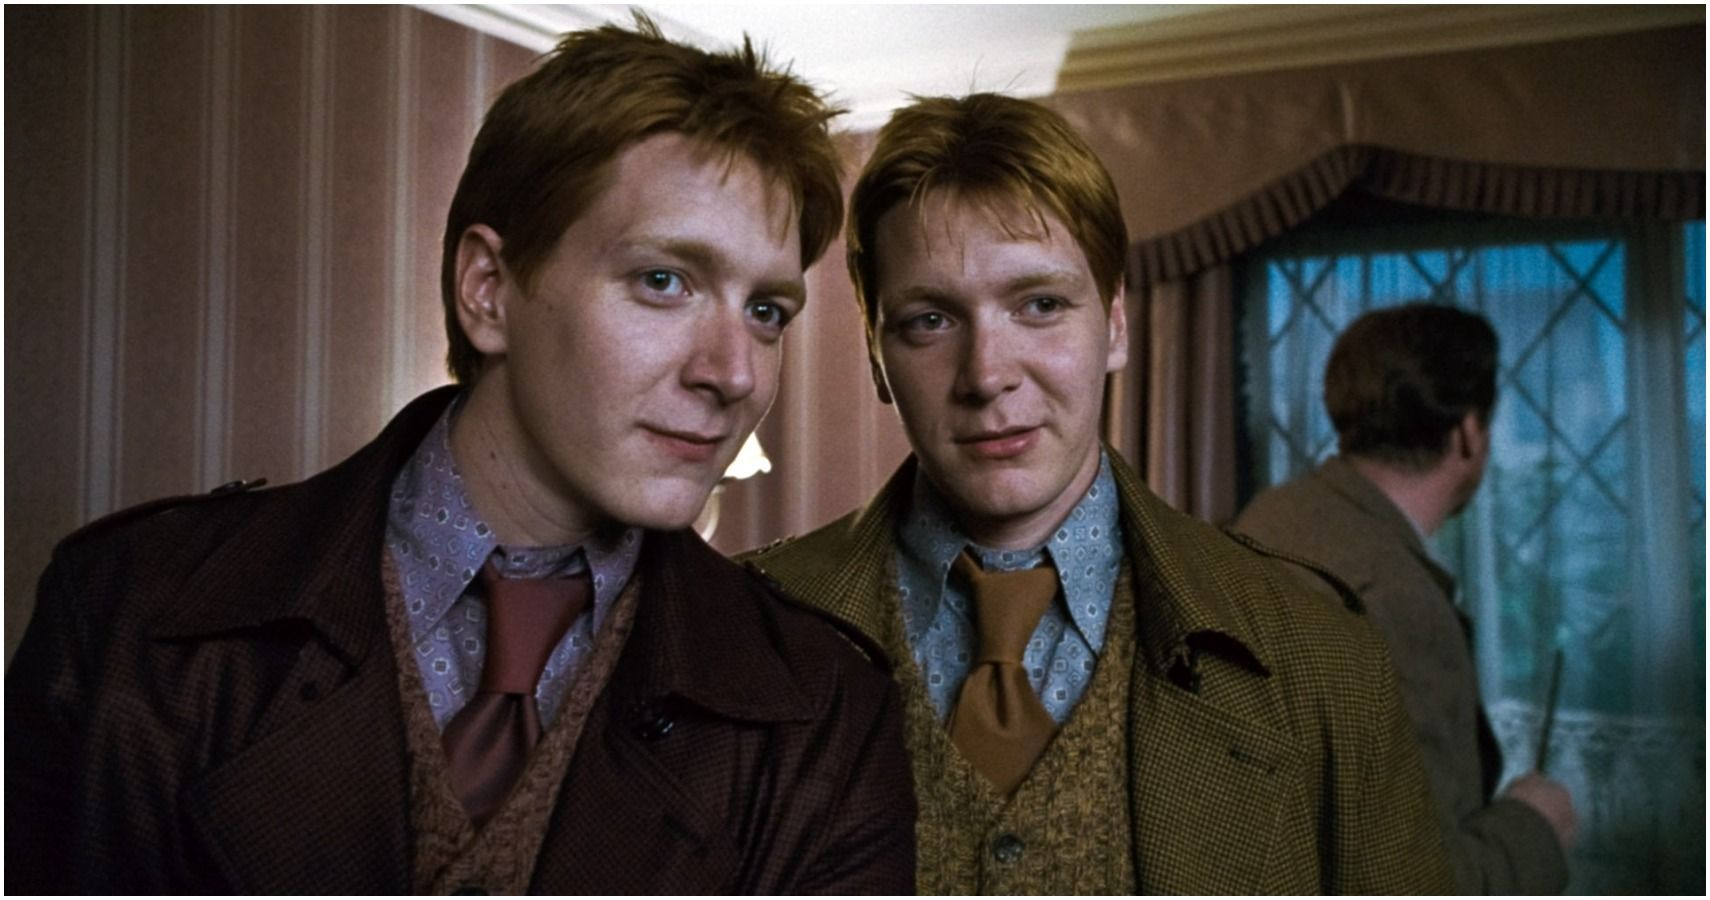 Harry Potter: 10 Things Only Book Fans Know About Fred And George Weasley